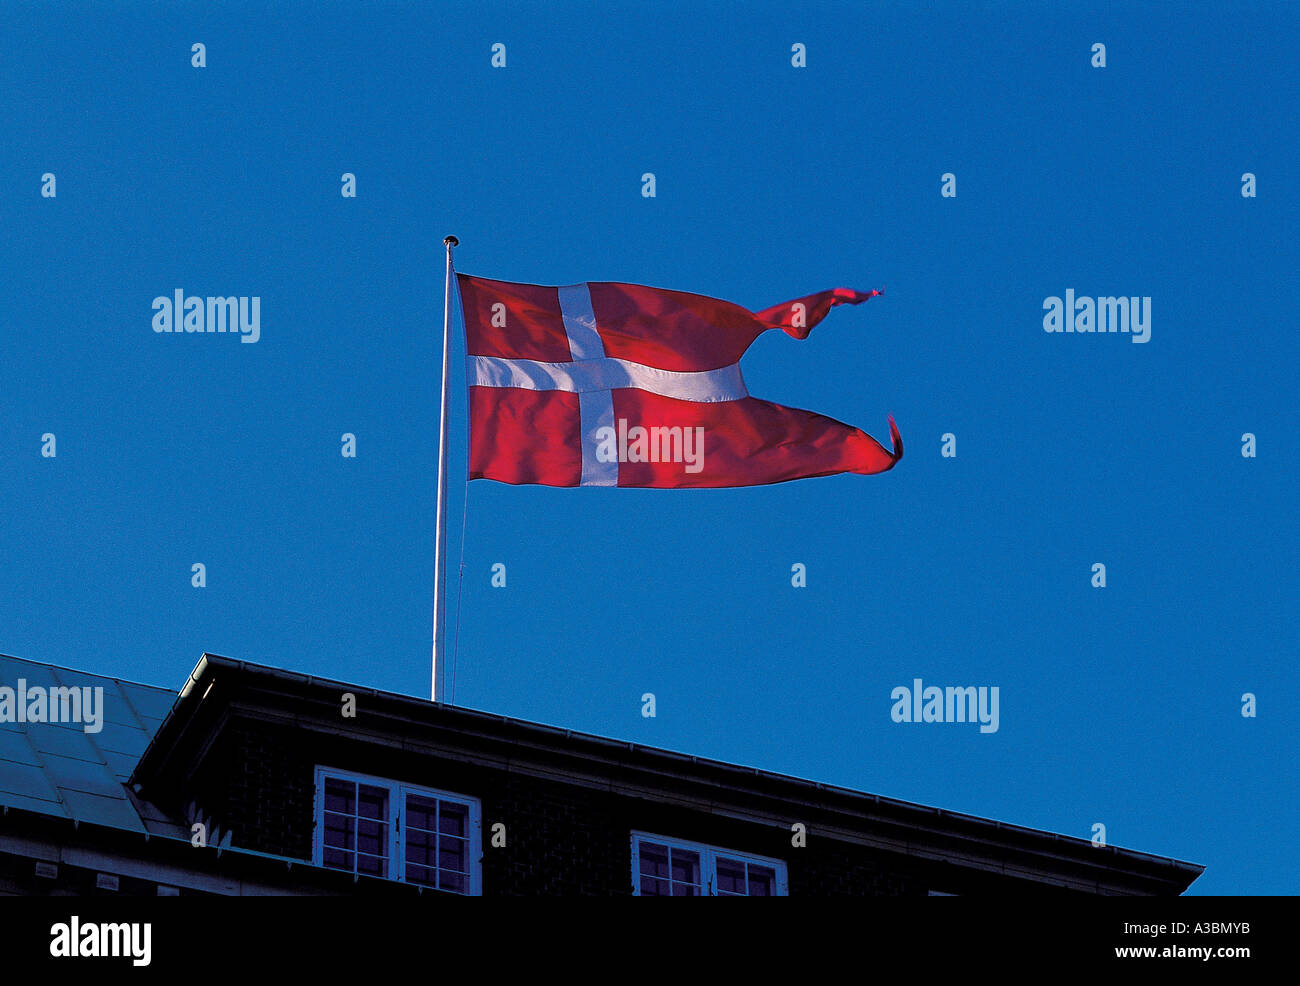 North Europe,Denmark,sightseeing place,sightseeing - Stock Image